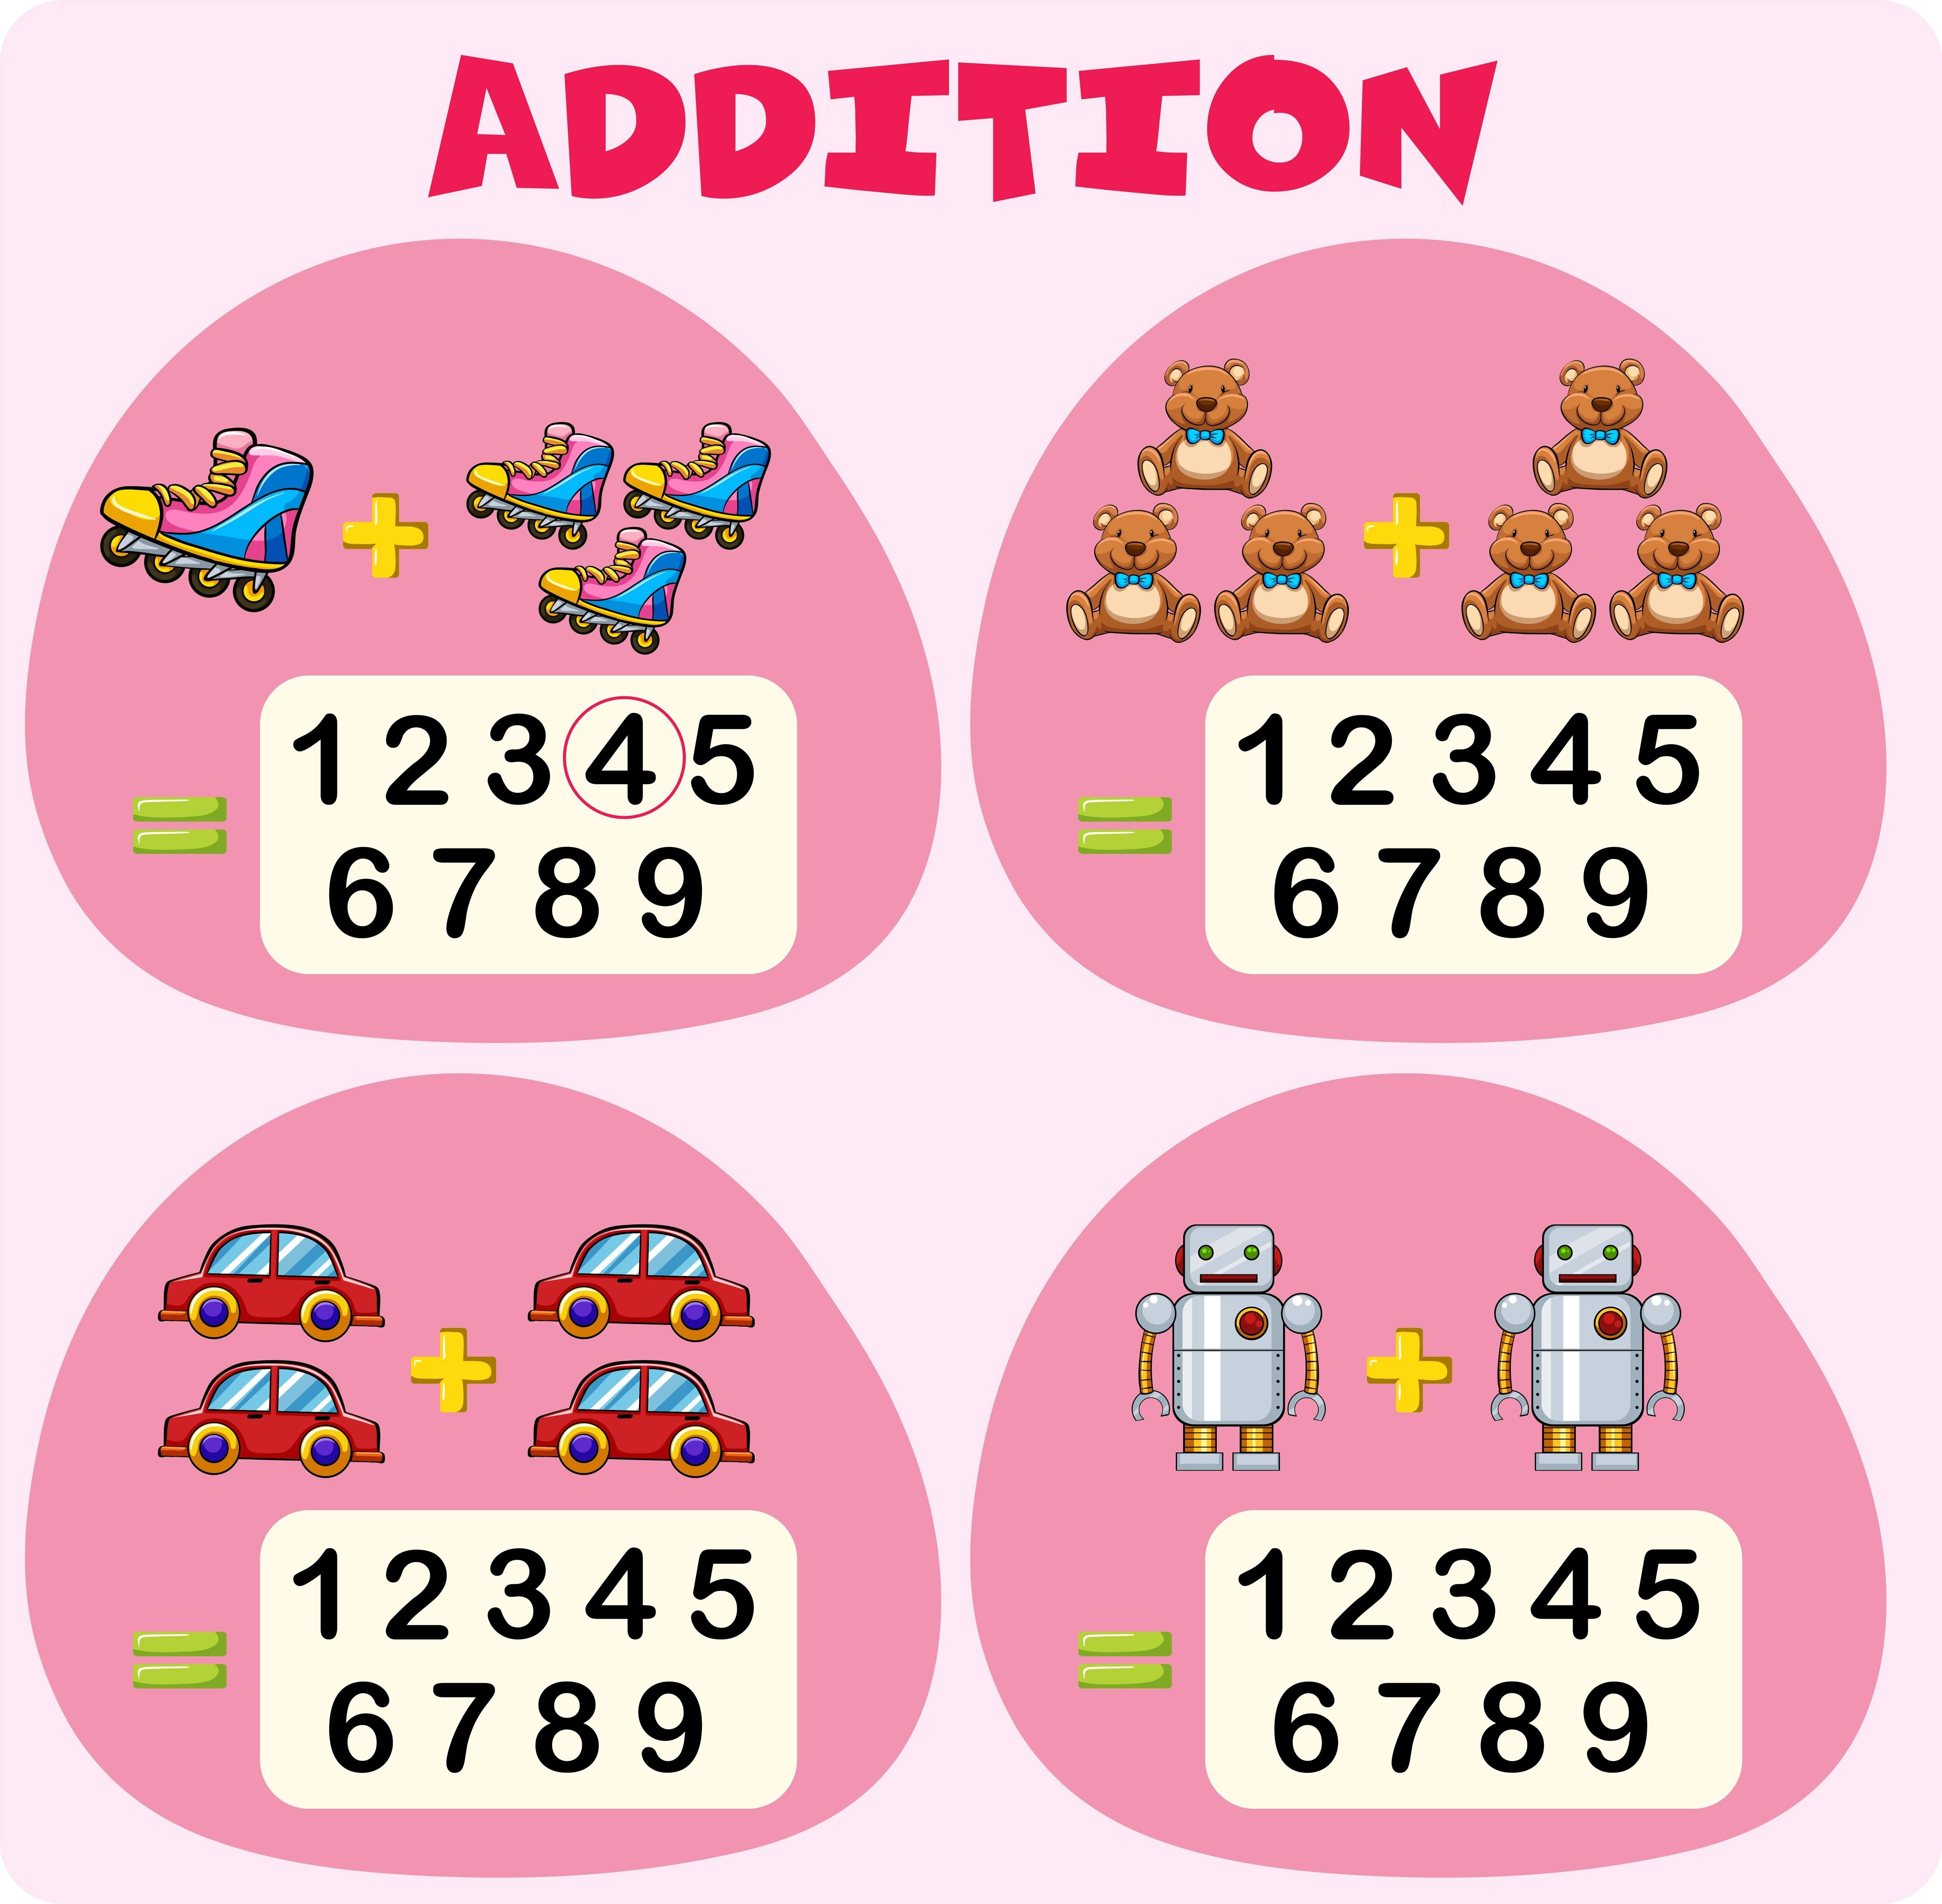 Addition Worksheet Template With Toys